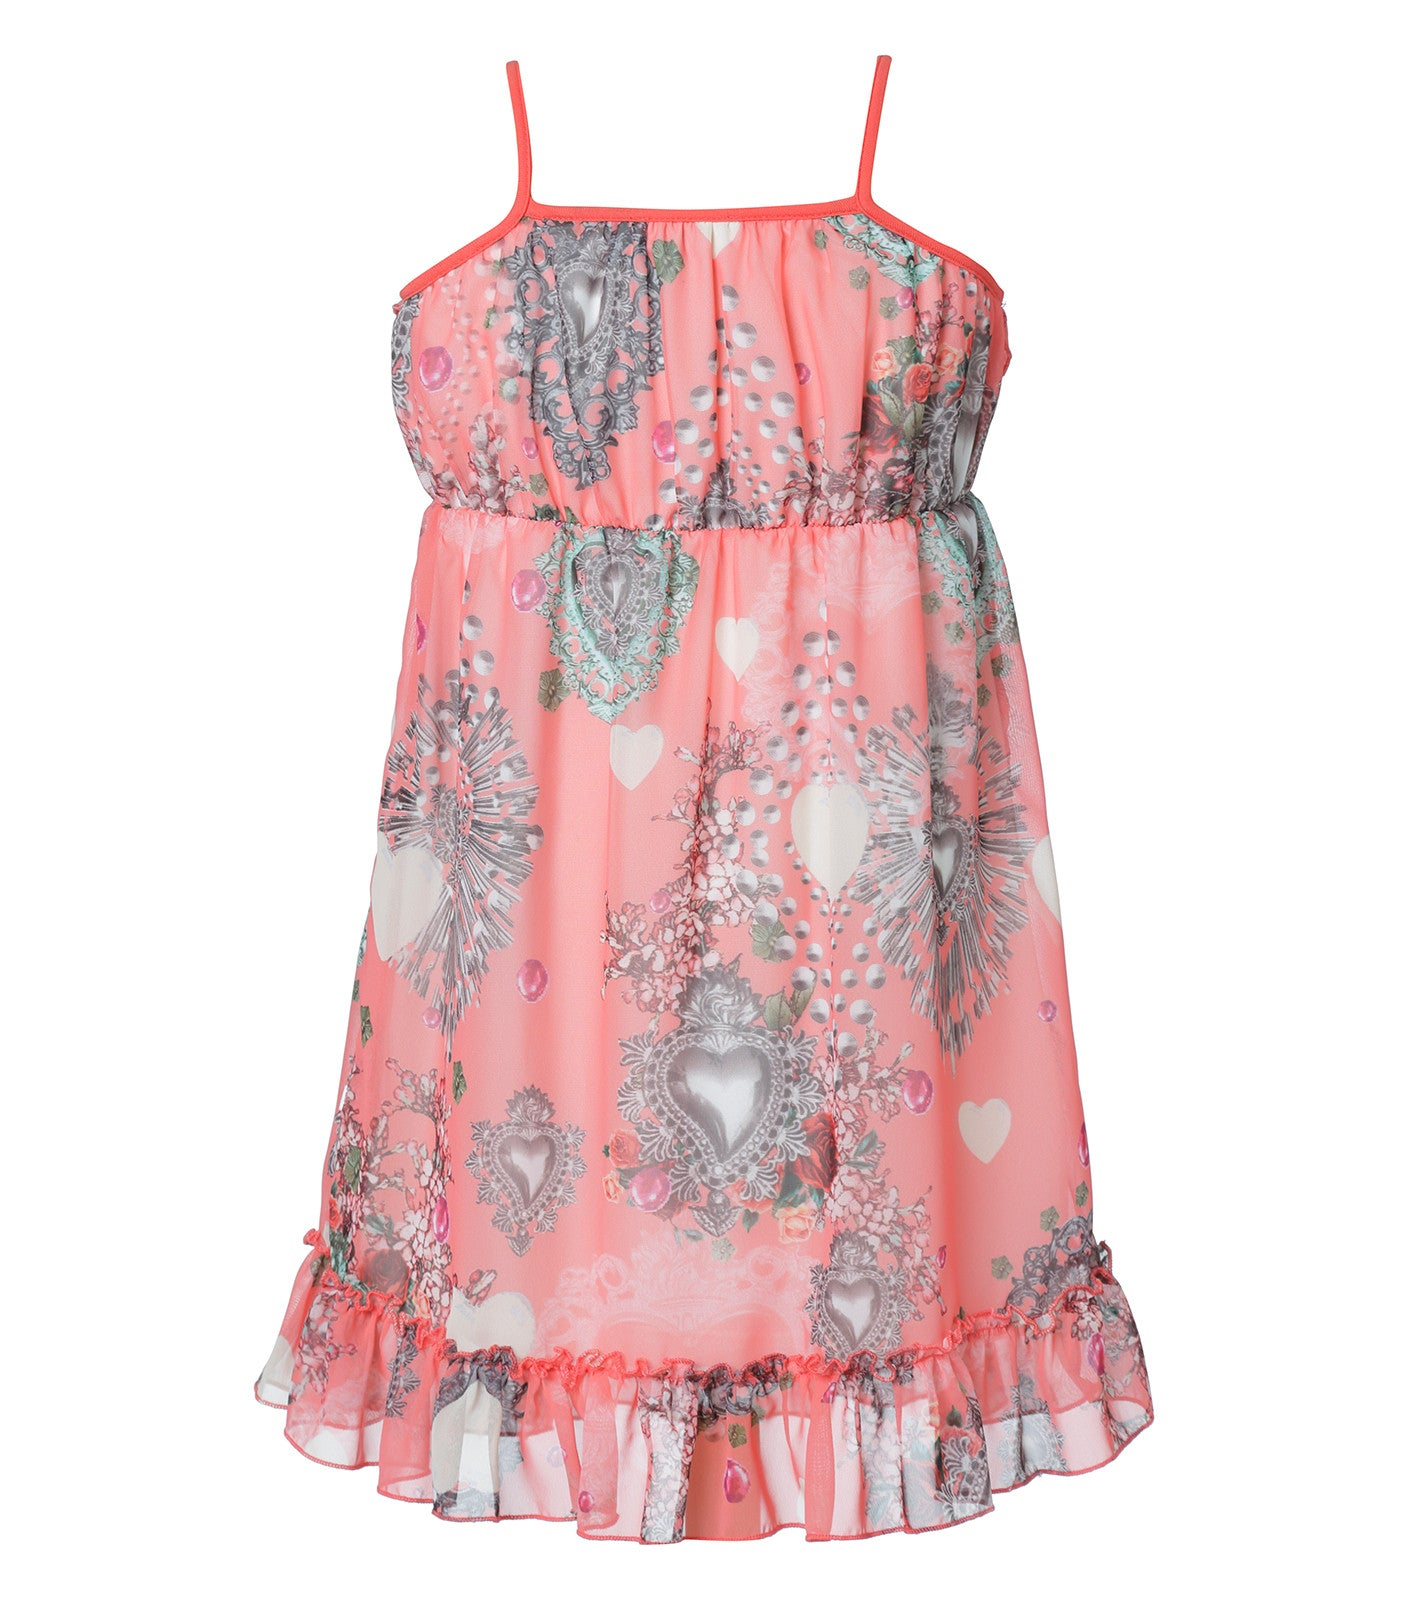 Hum dress in coral pink